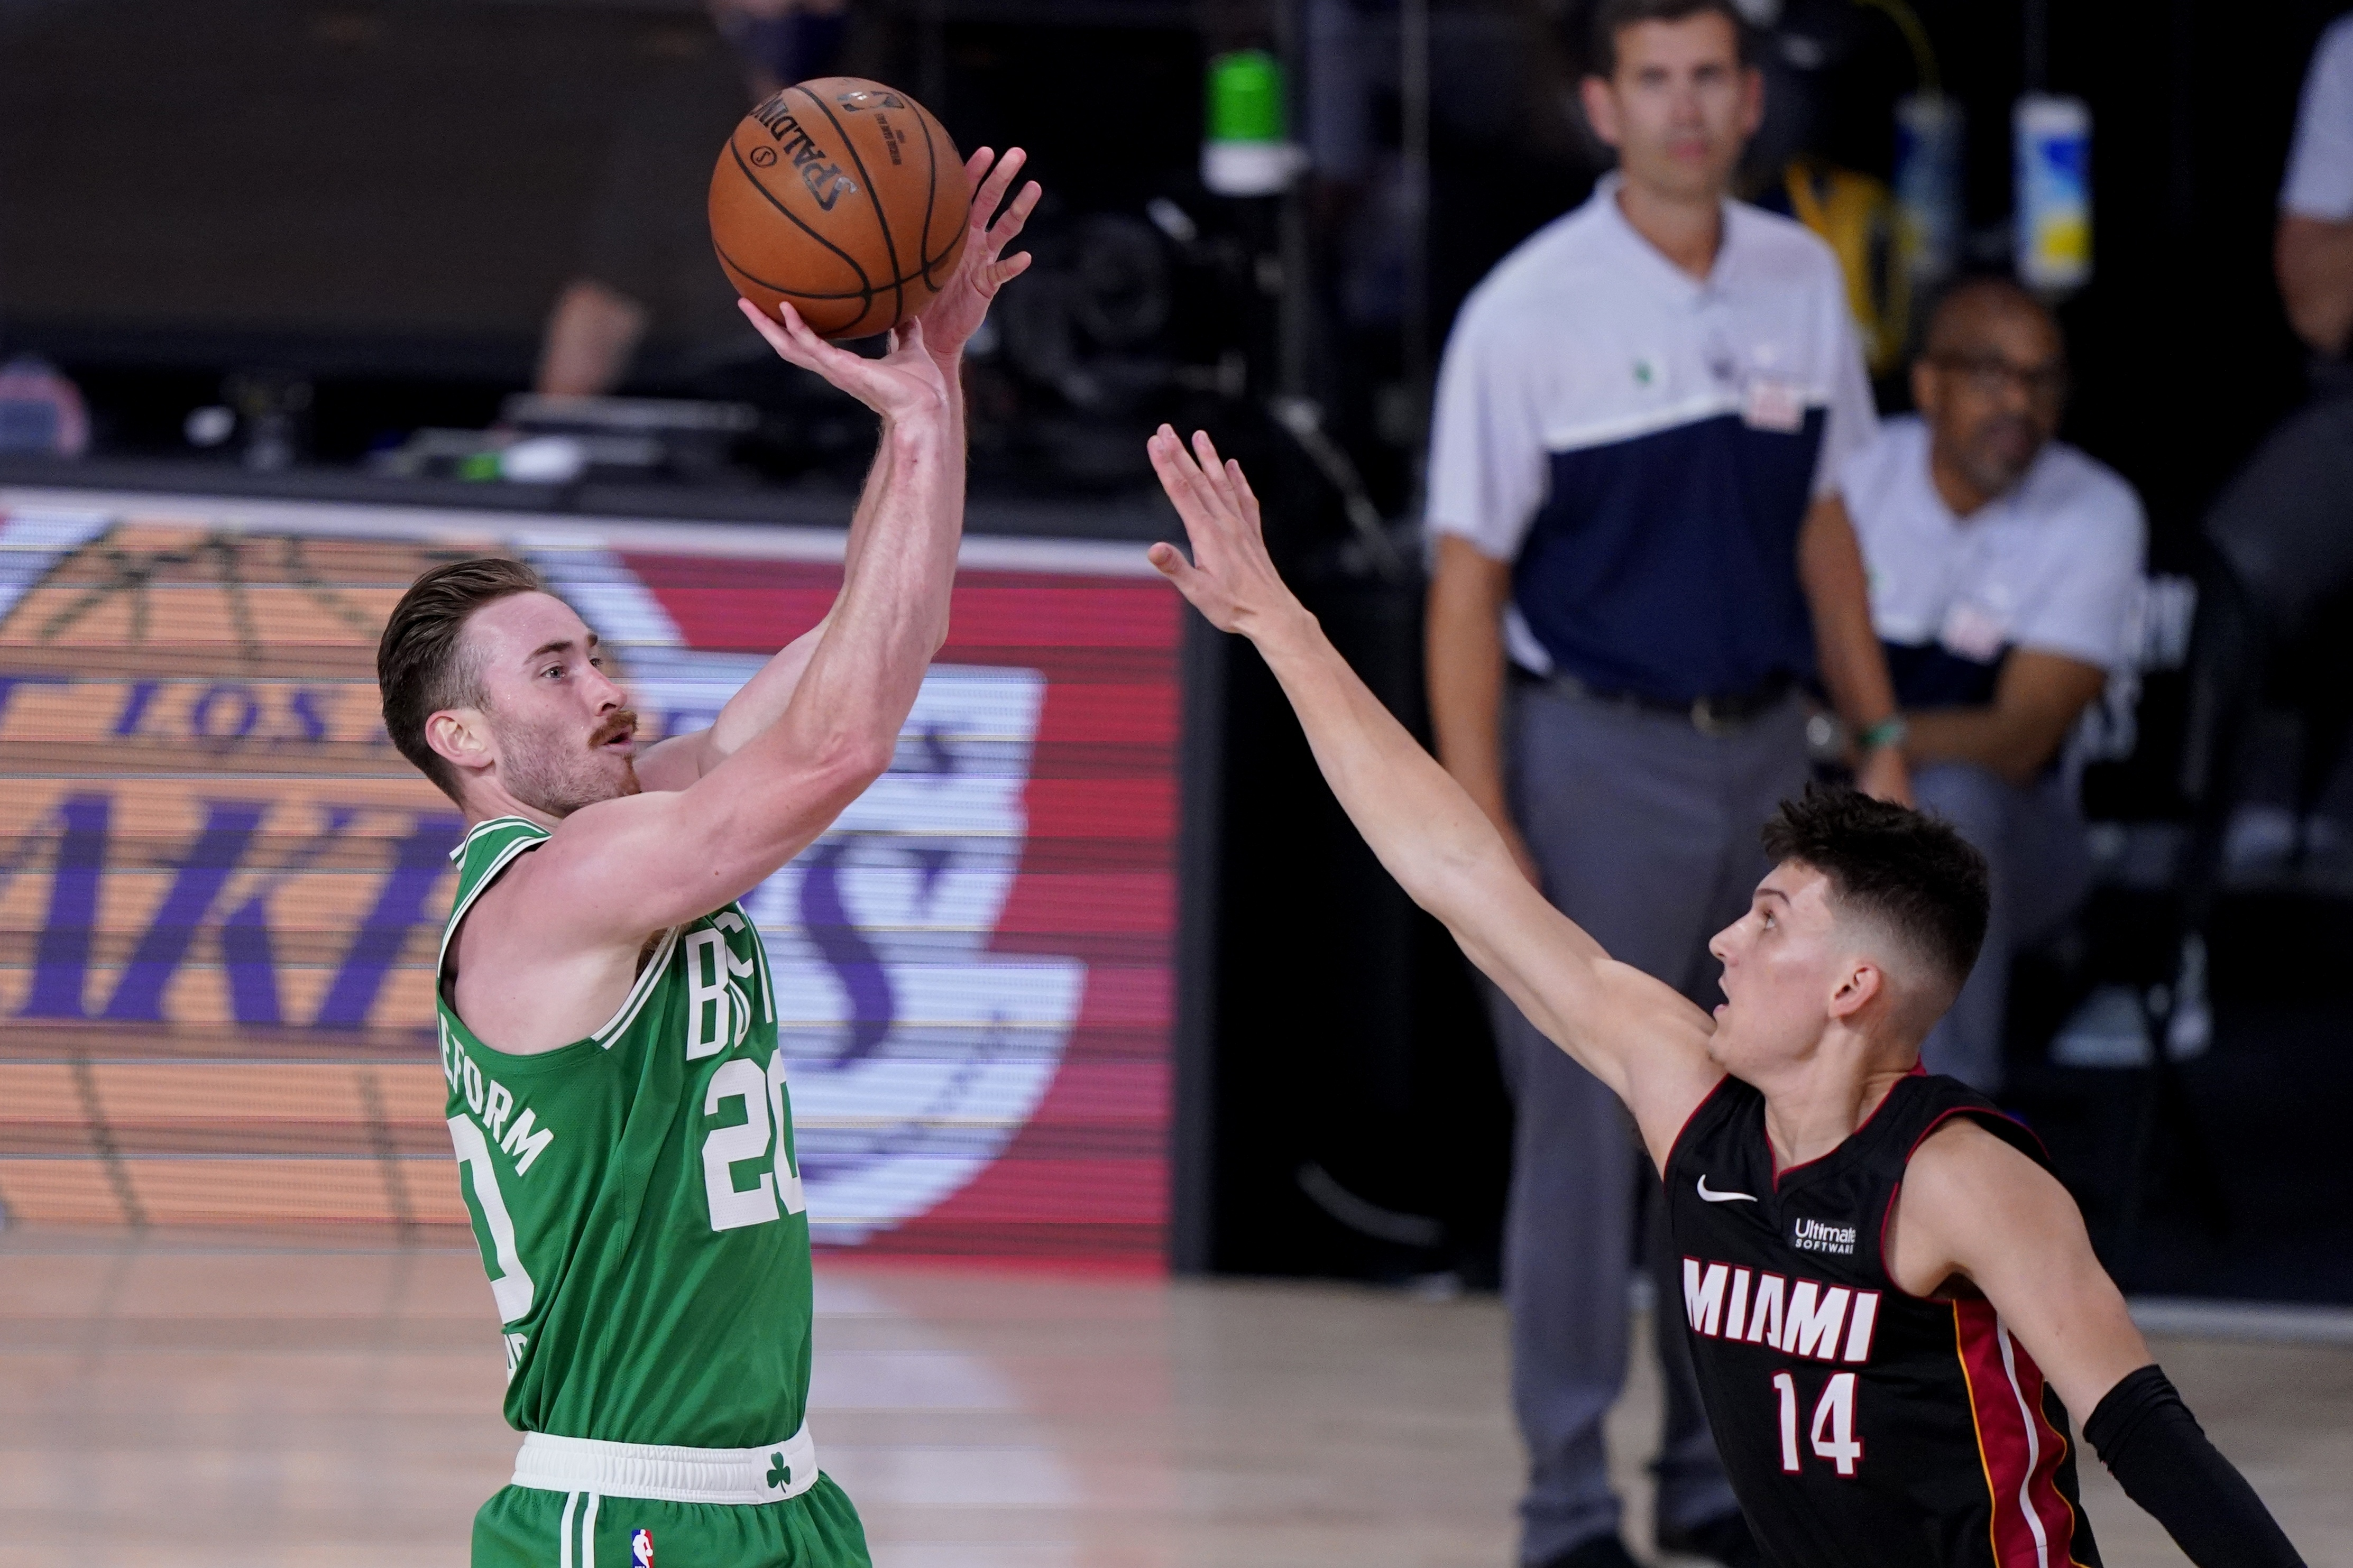 bostonglobe.com - Adam Himmelsbach - Eight thoughts on where the Celtics stand now after their Game 3 win over the Heat